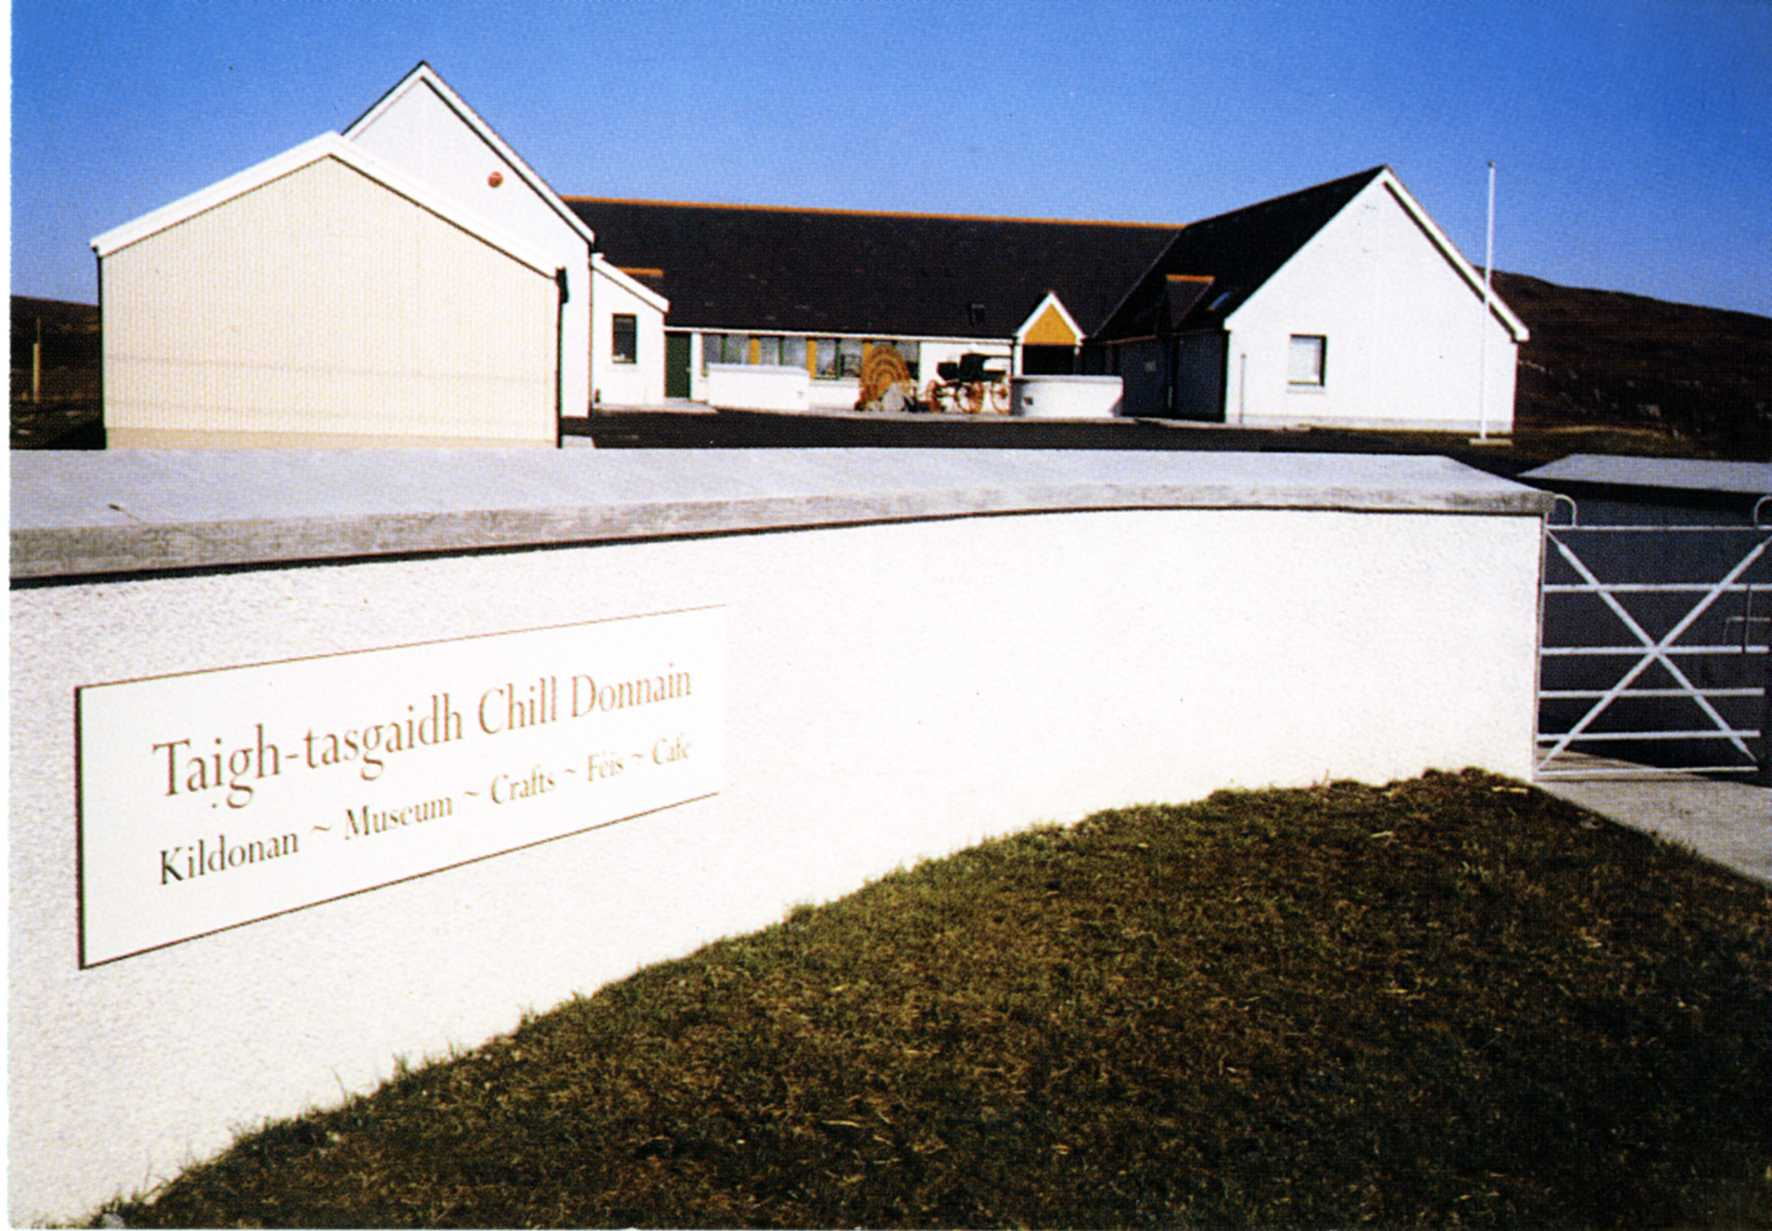 Kildonan Museum, South Uist